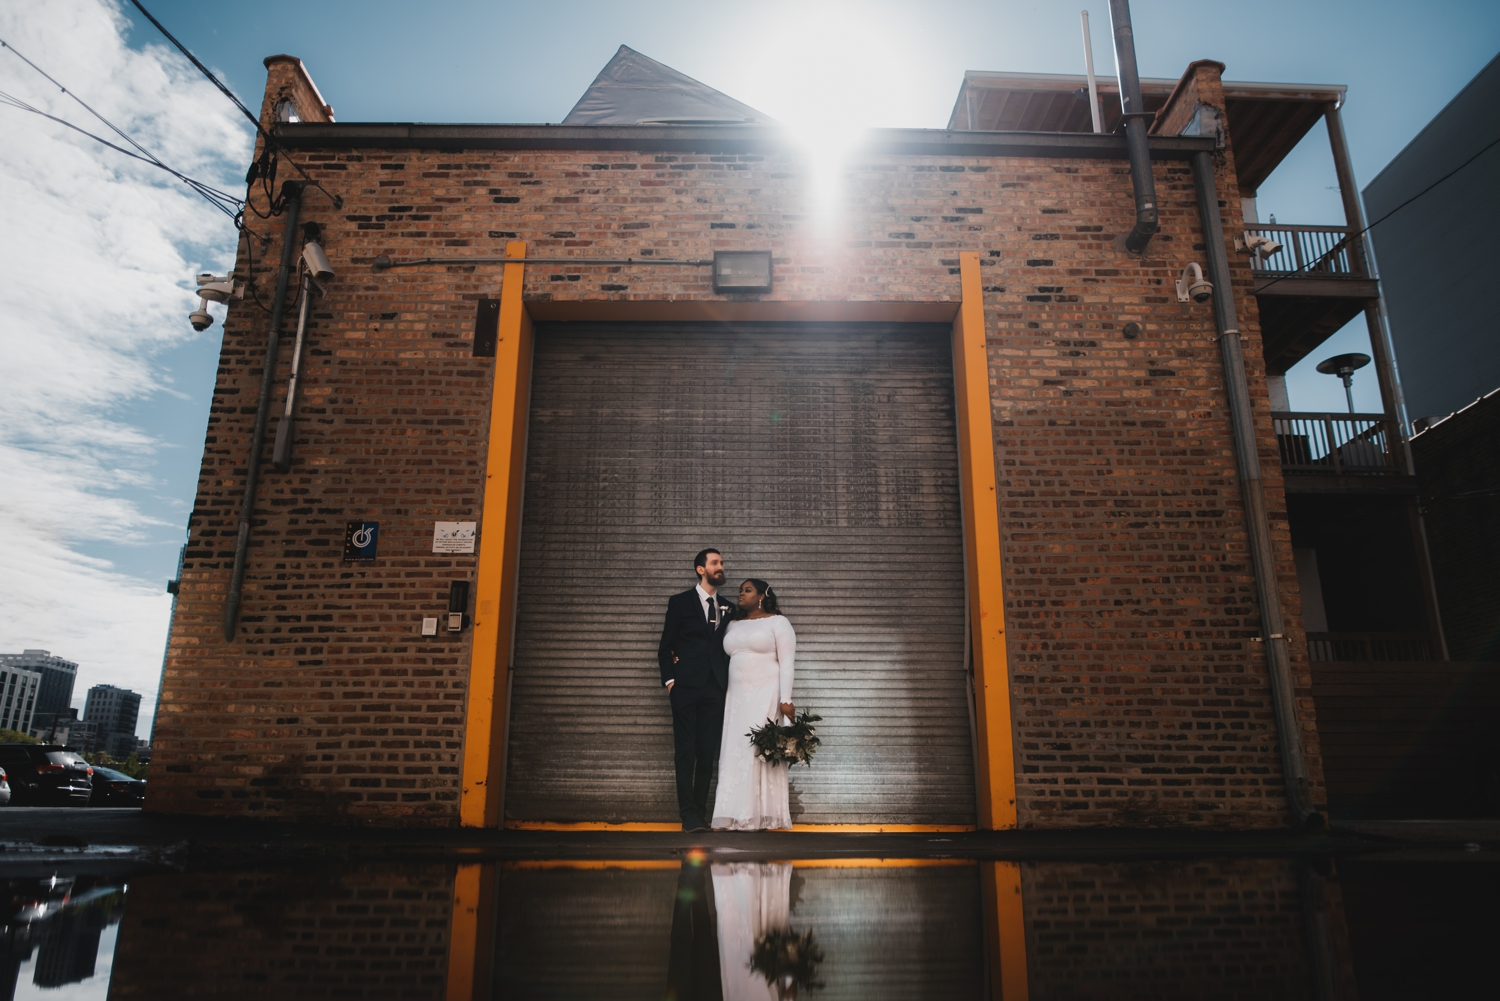 Chicago Elopement photographer - The Adamkovi, bride and groom chicago back alley portrait, creative